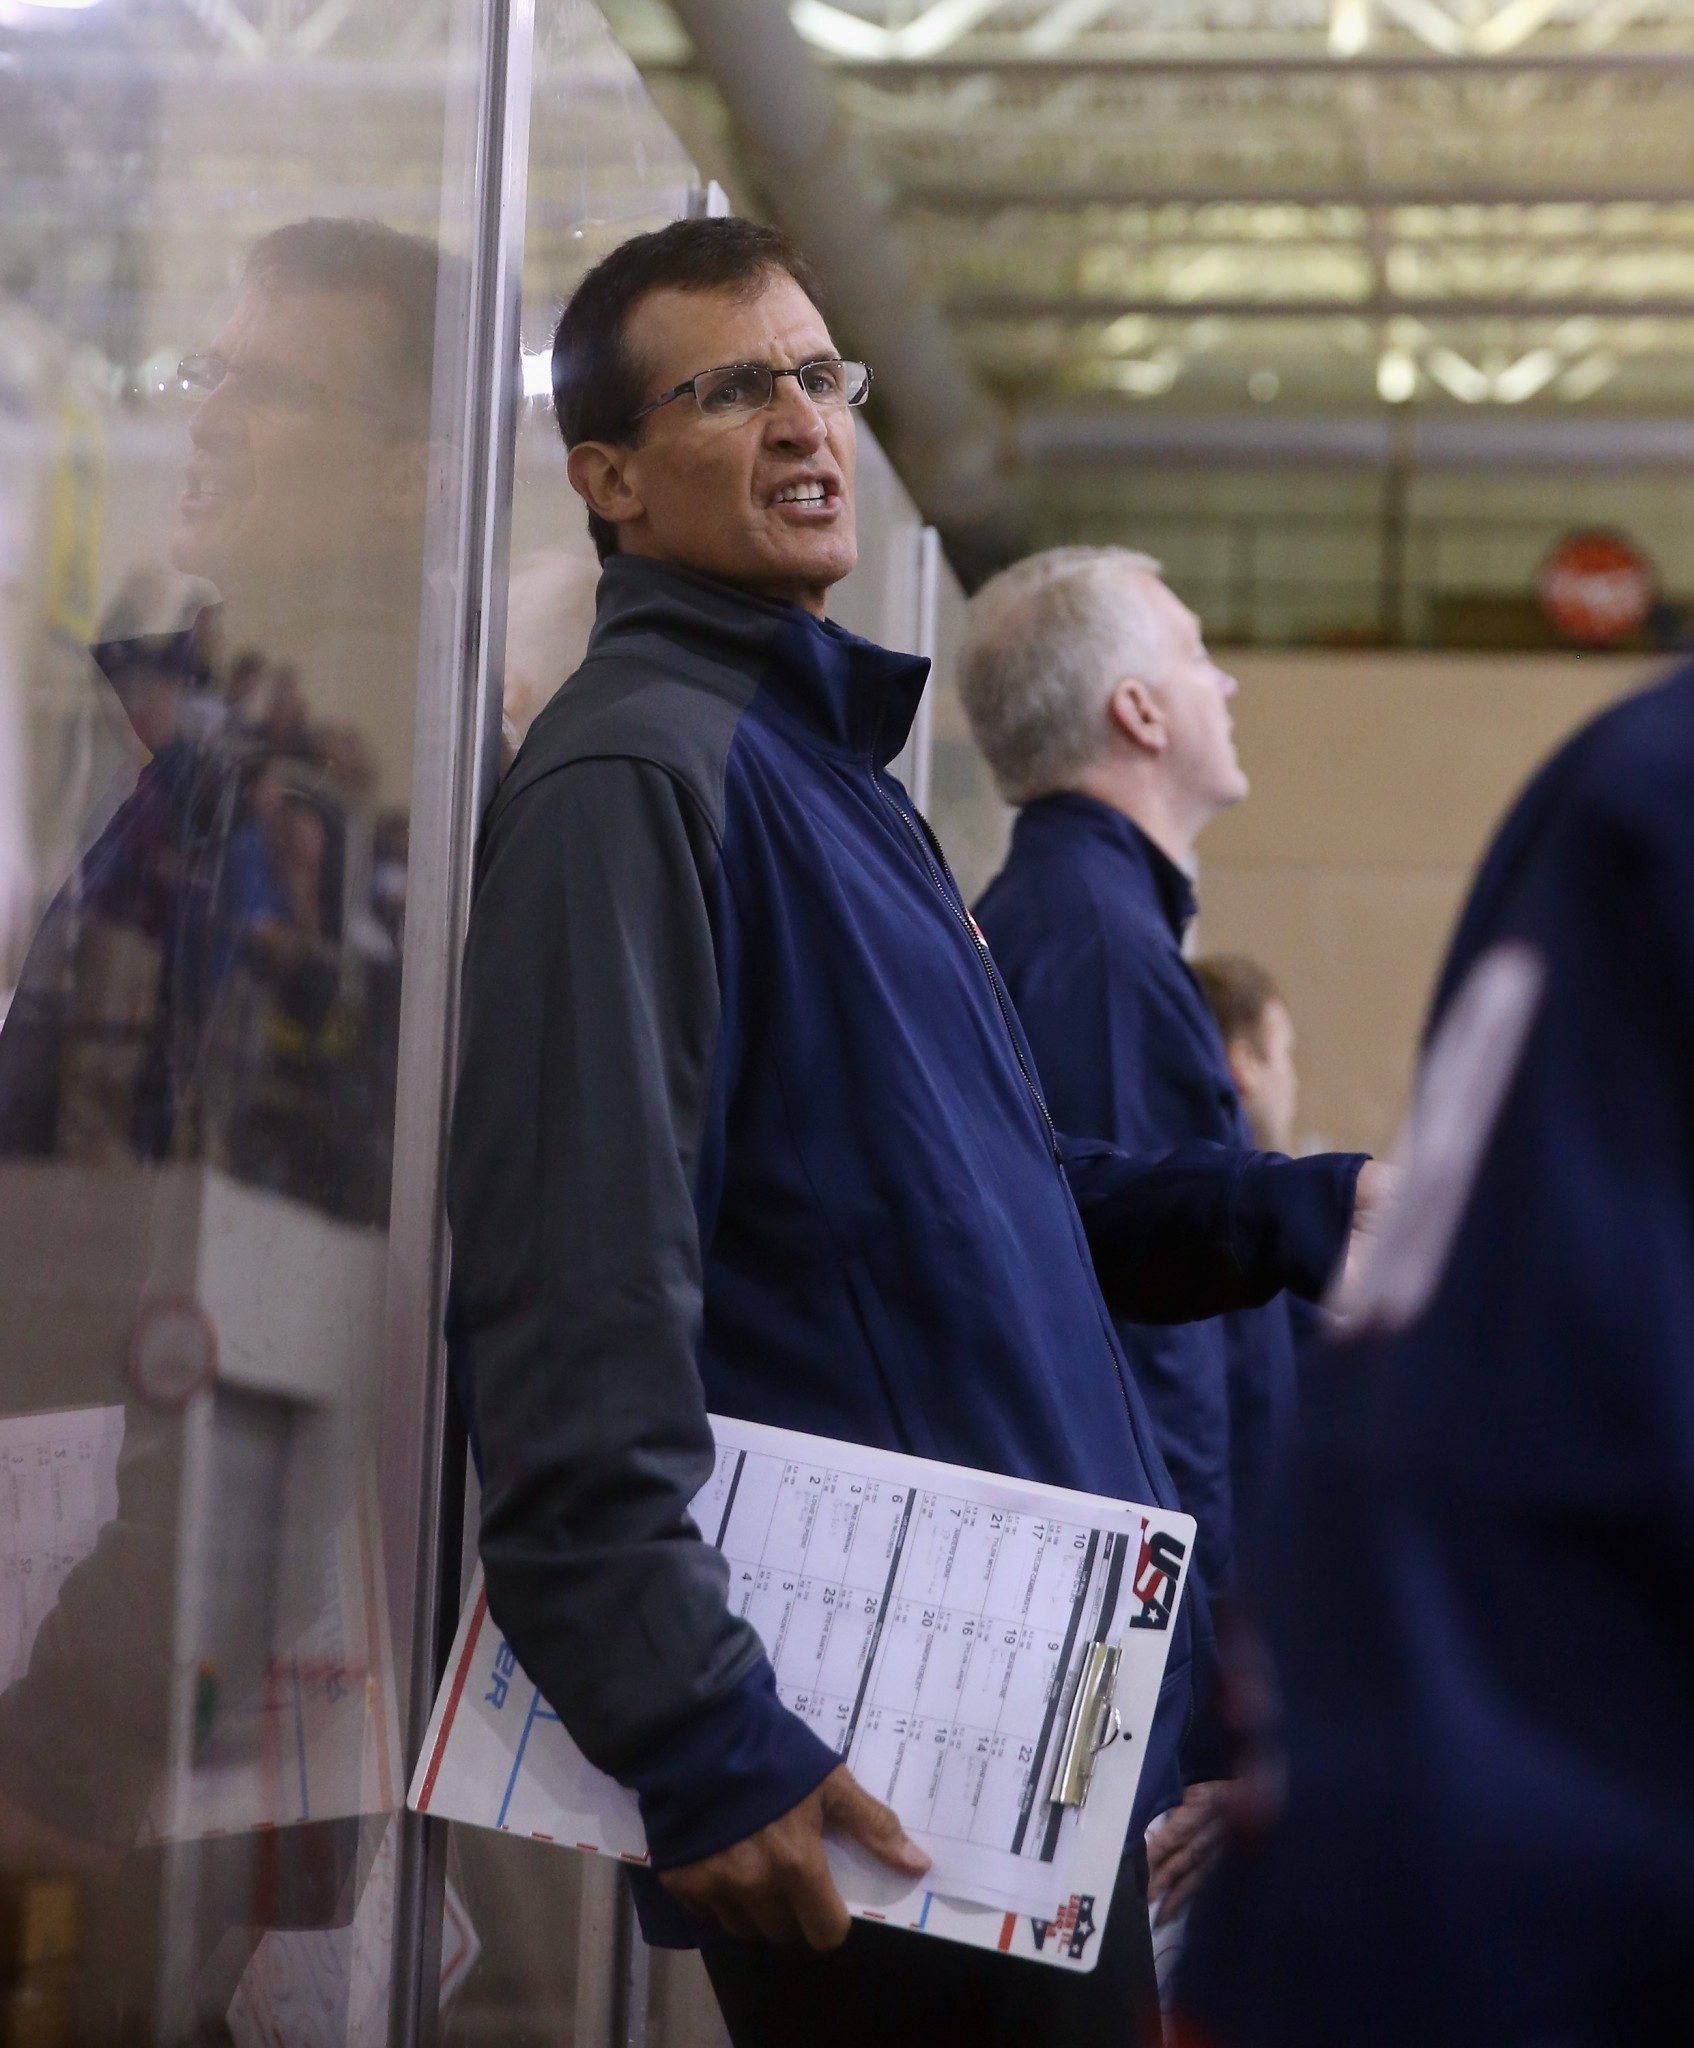 Tony Granato has been named head coach of the United States' men's ice hockey team for Pyeongchang 2018 ©Getty Images